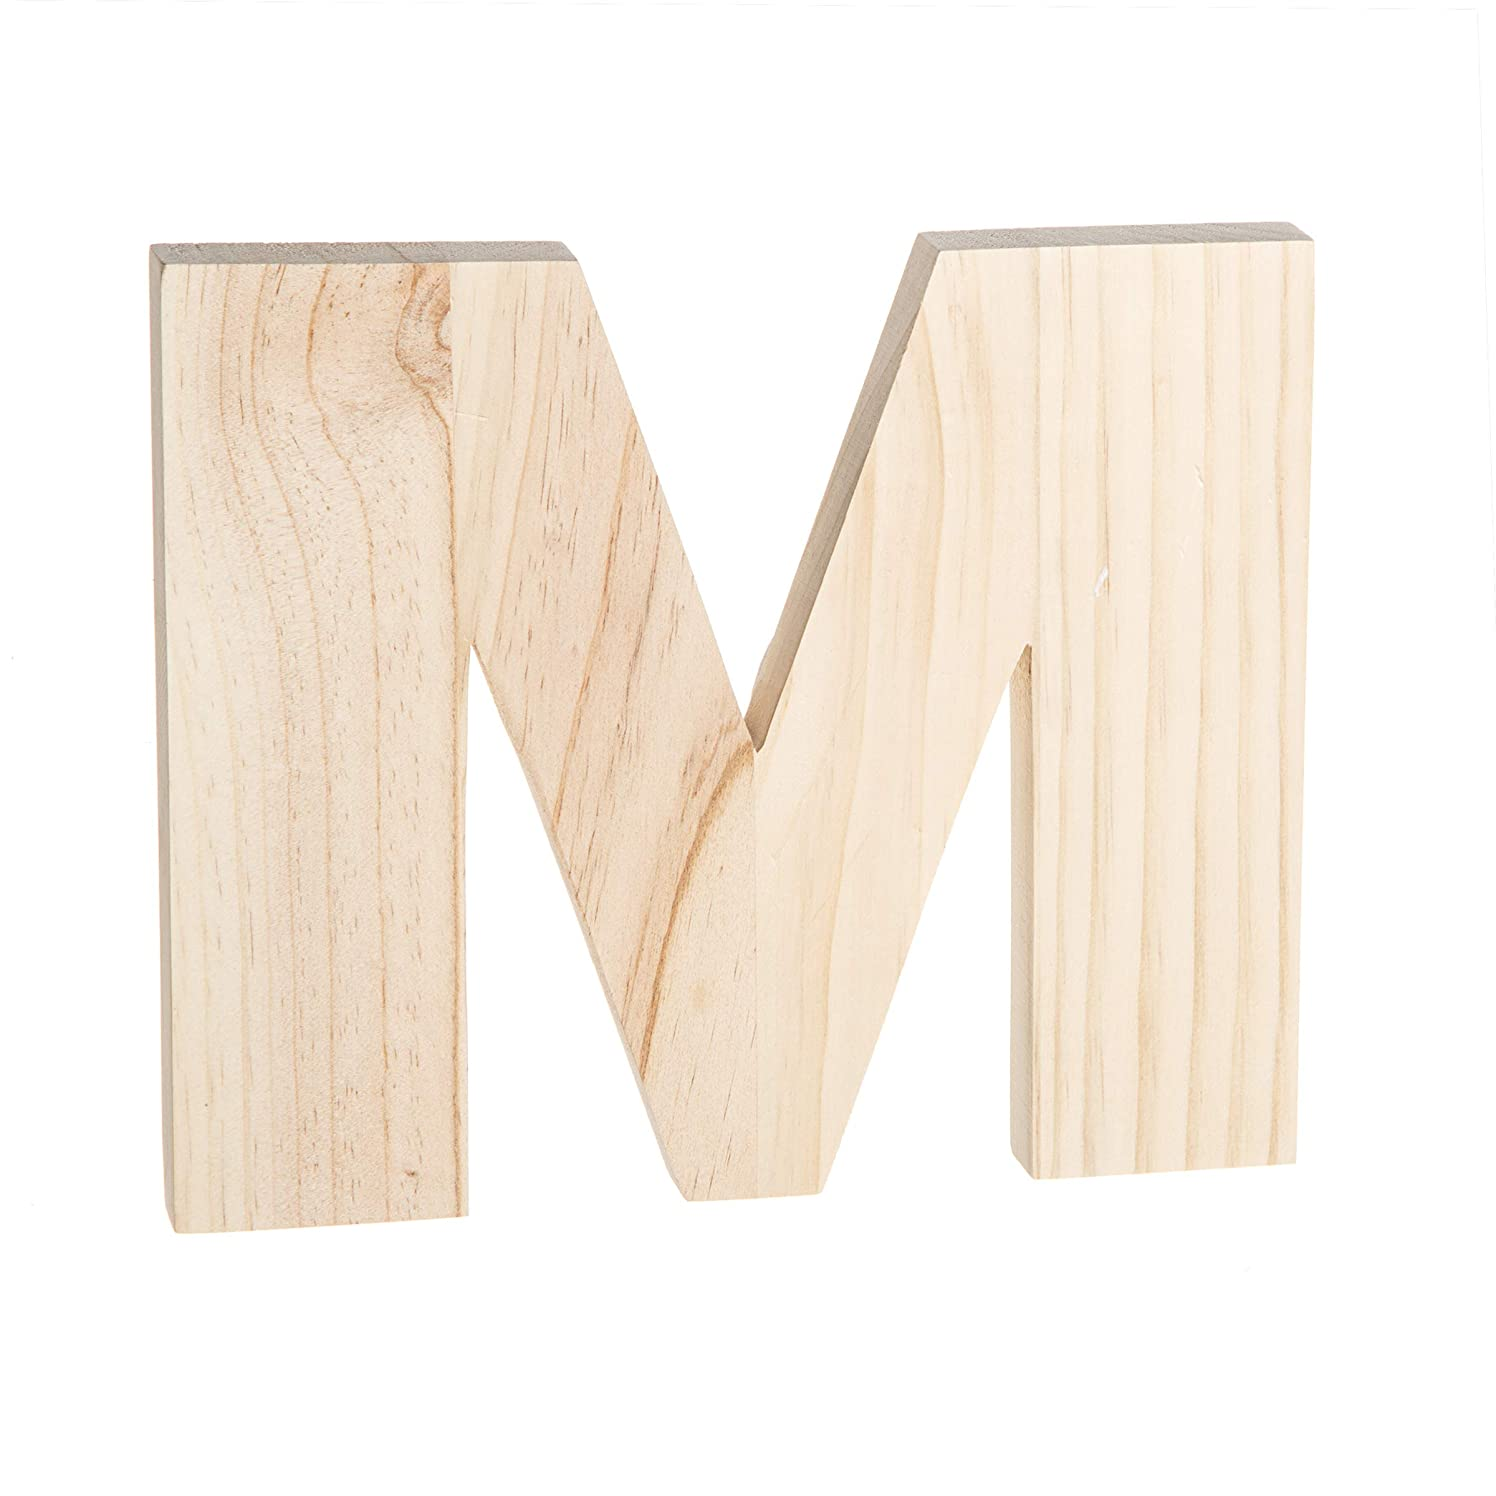 Darice 30066914 Unfinished Wood Letter: M, 8 x 8 inches, Natural